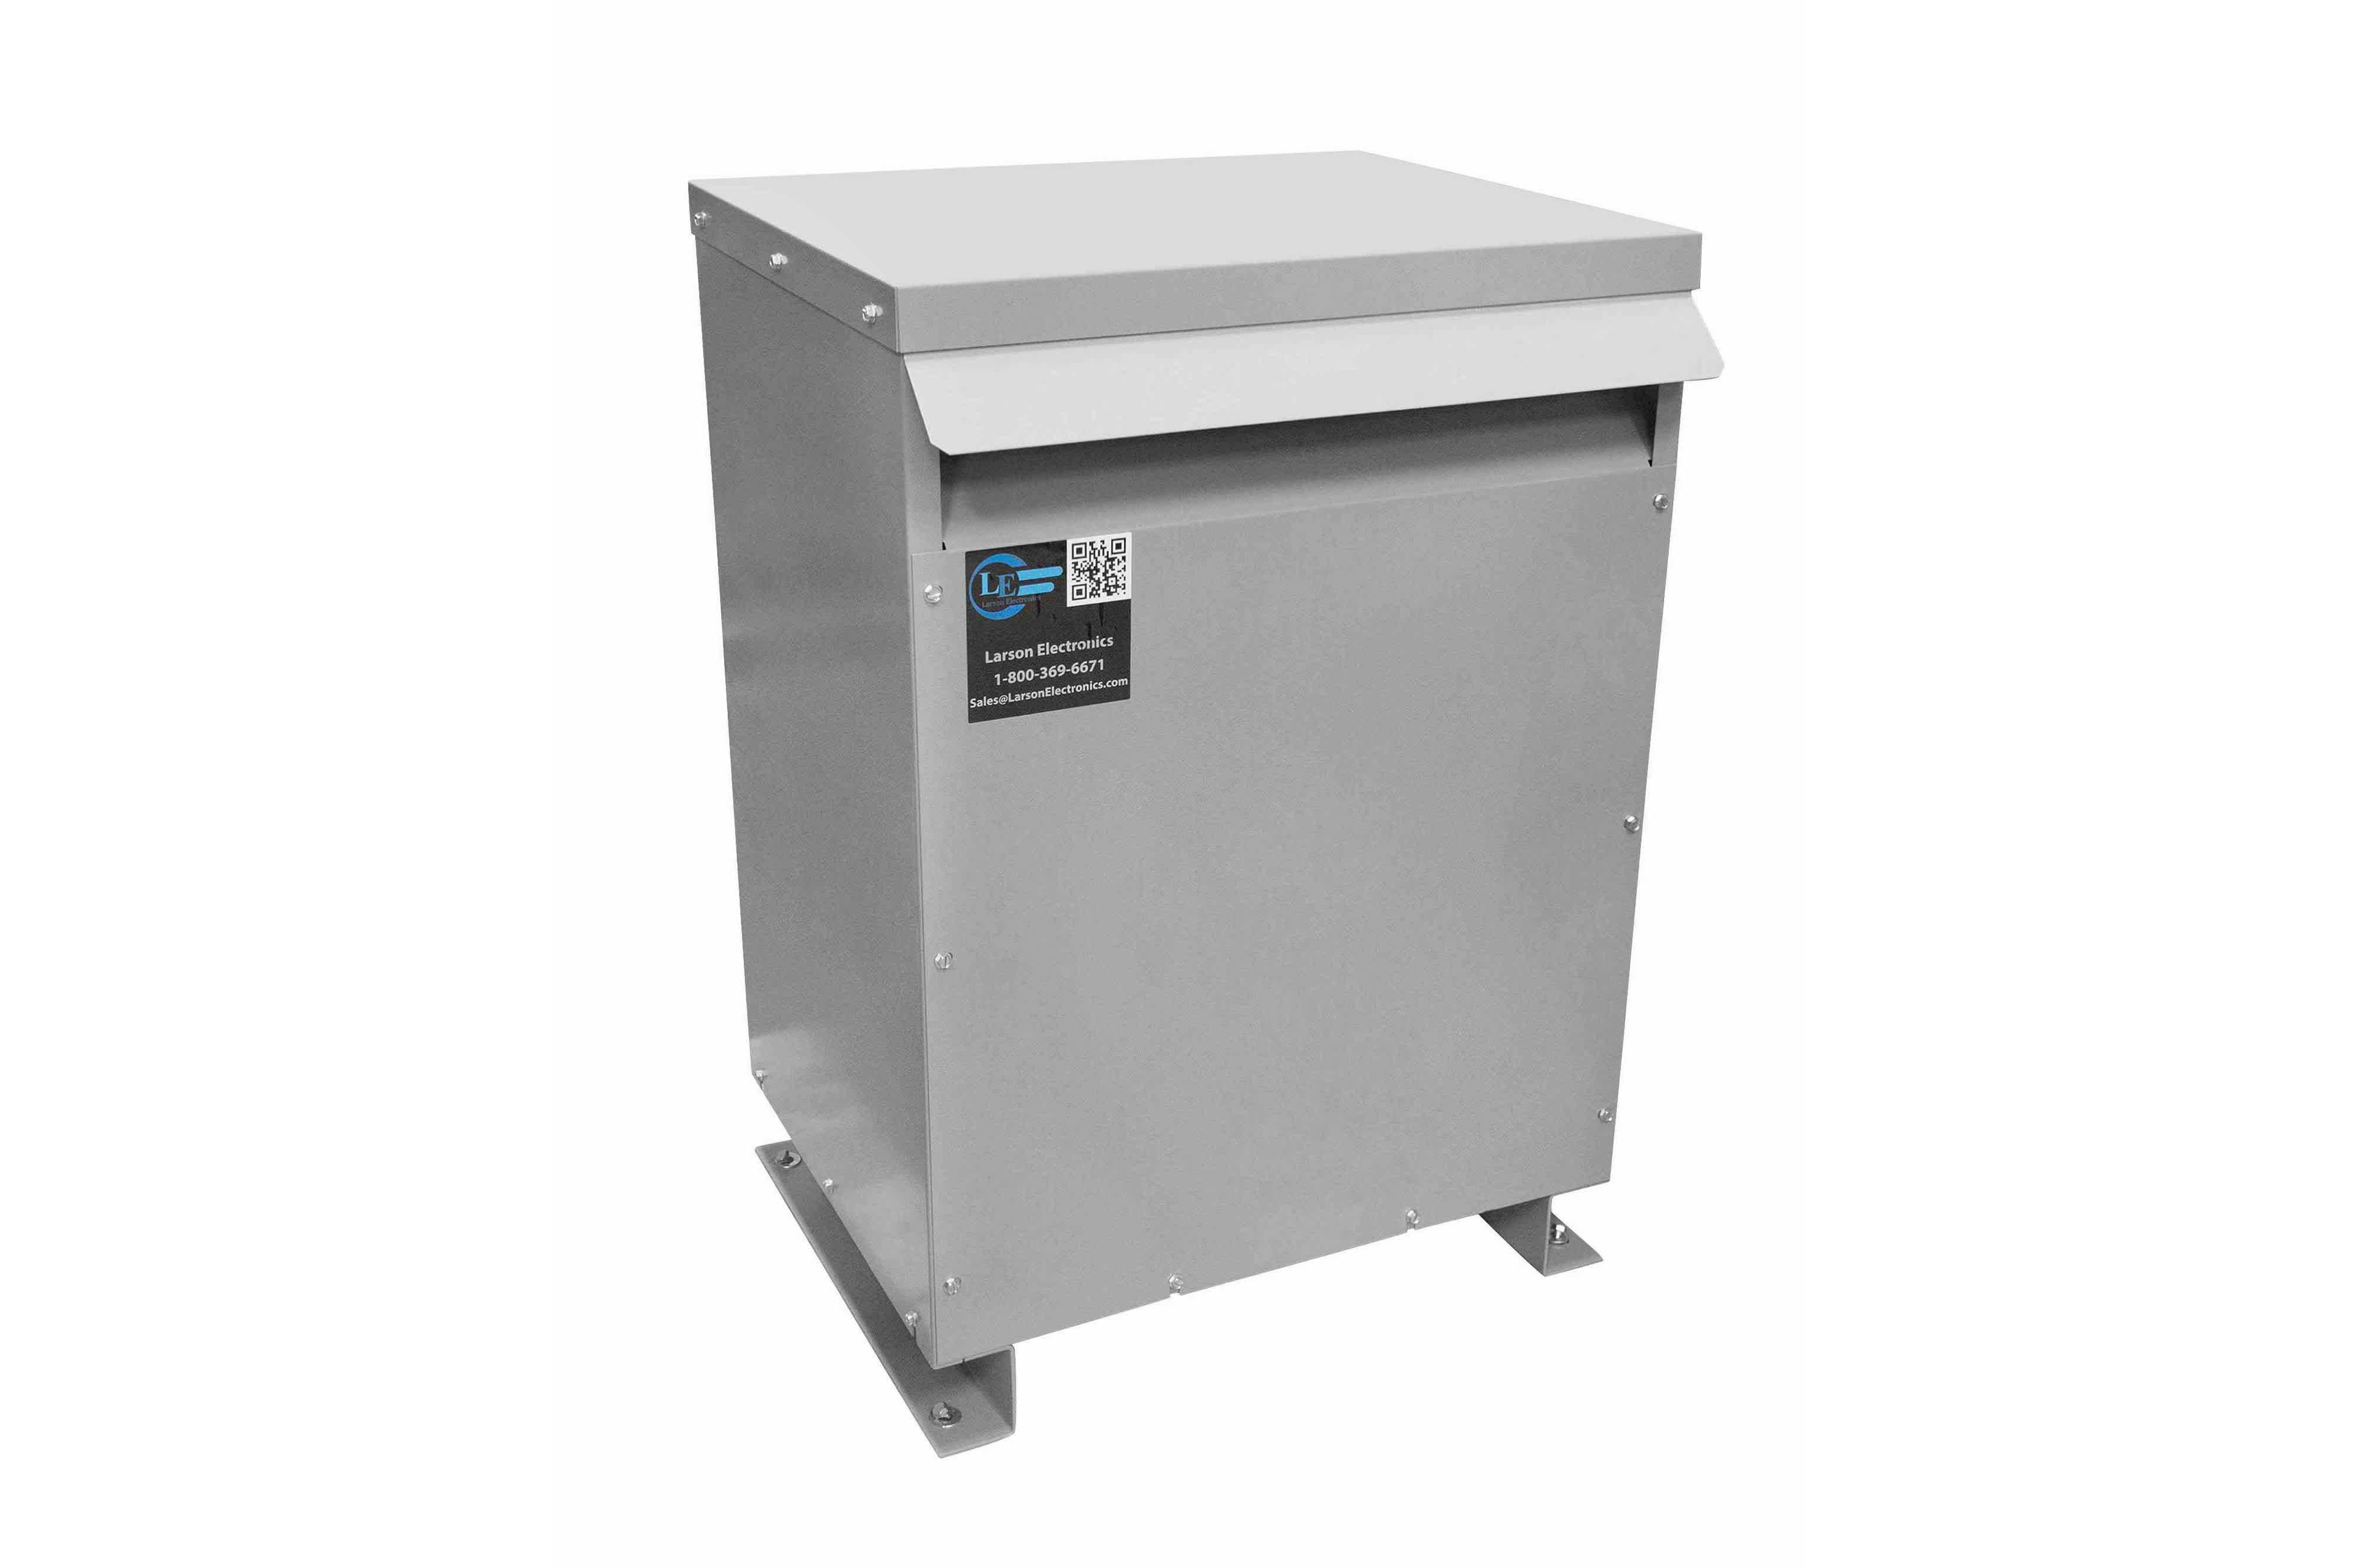 32.5 kVA 3PH Isolation Transformer, 600V Delta Primary, 380V Delta Secondary, N3R, Ventilated, 60 Hz